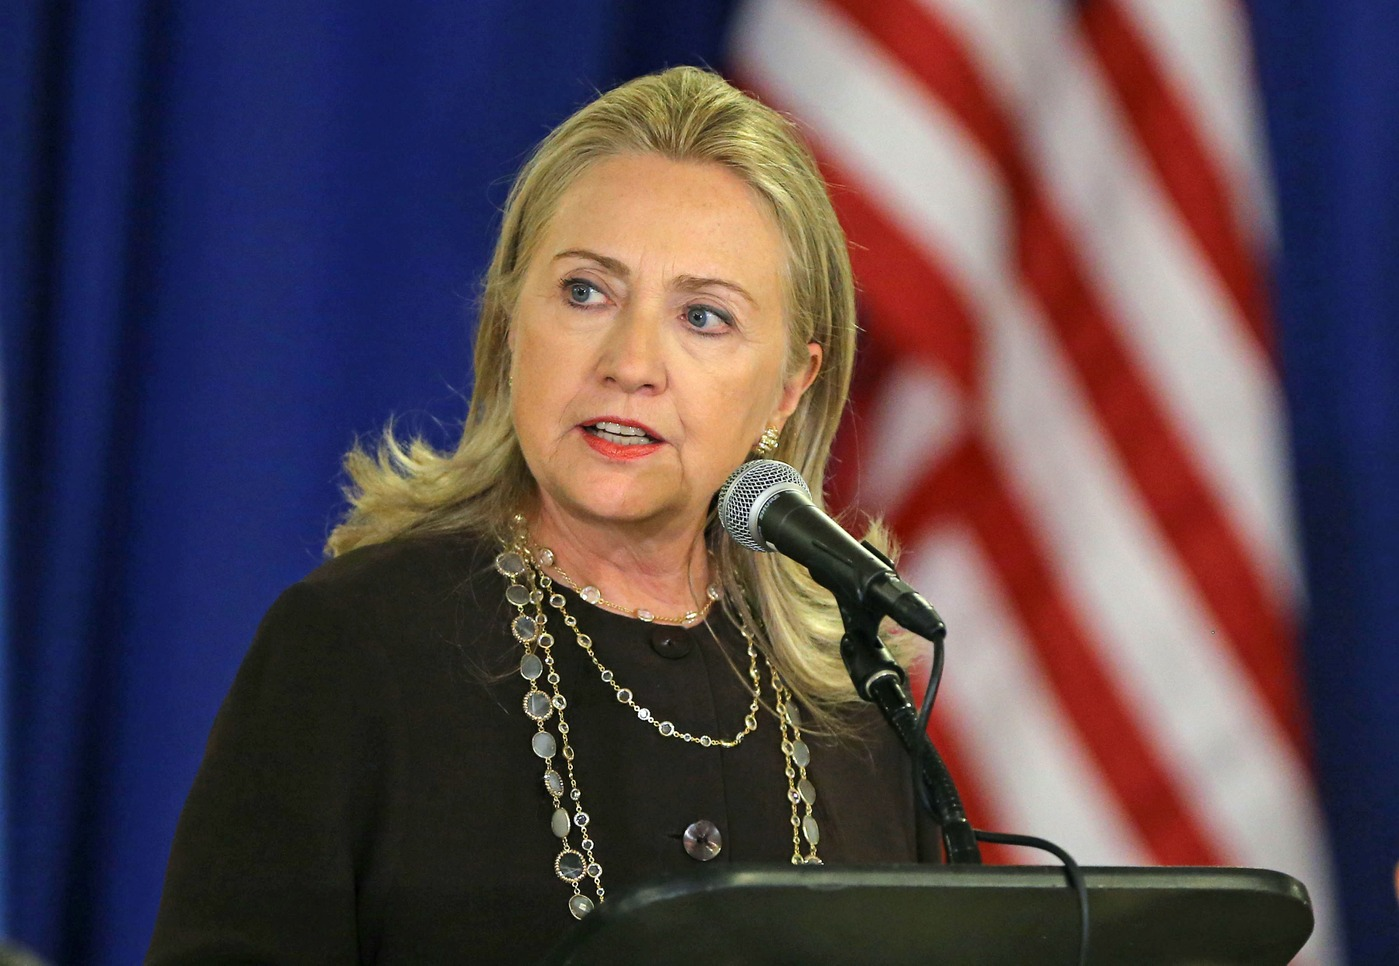 Hillary Clinton Says She Supports GMO